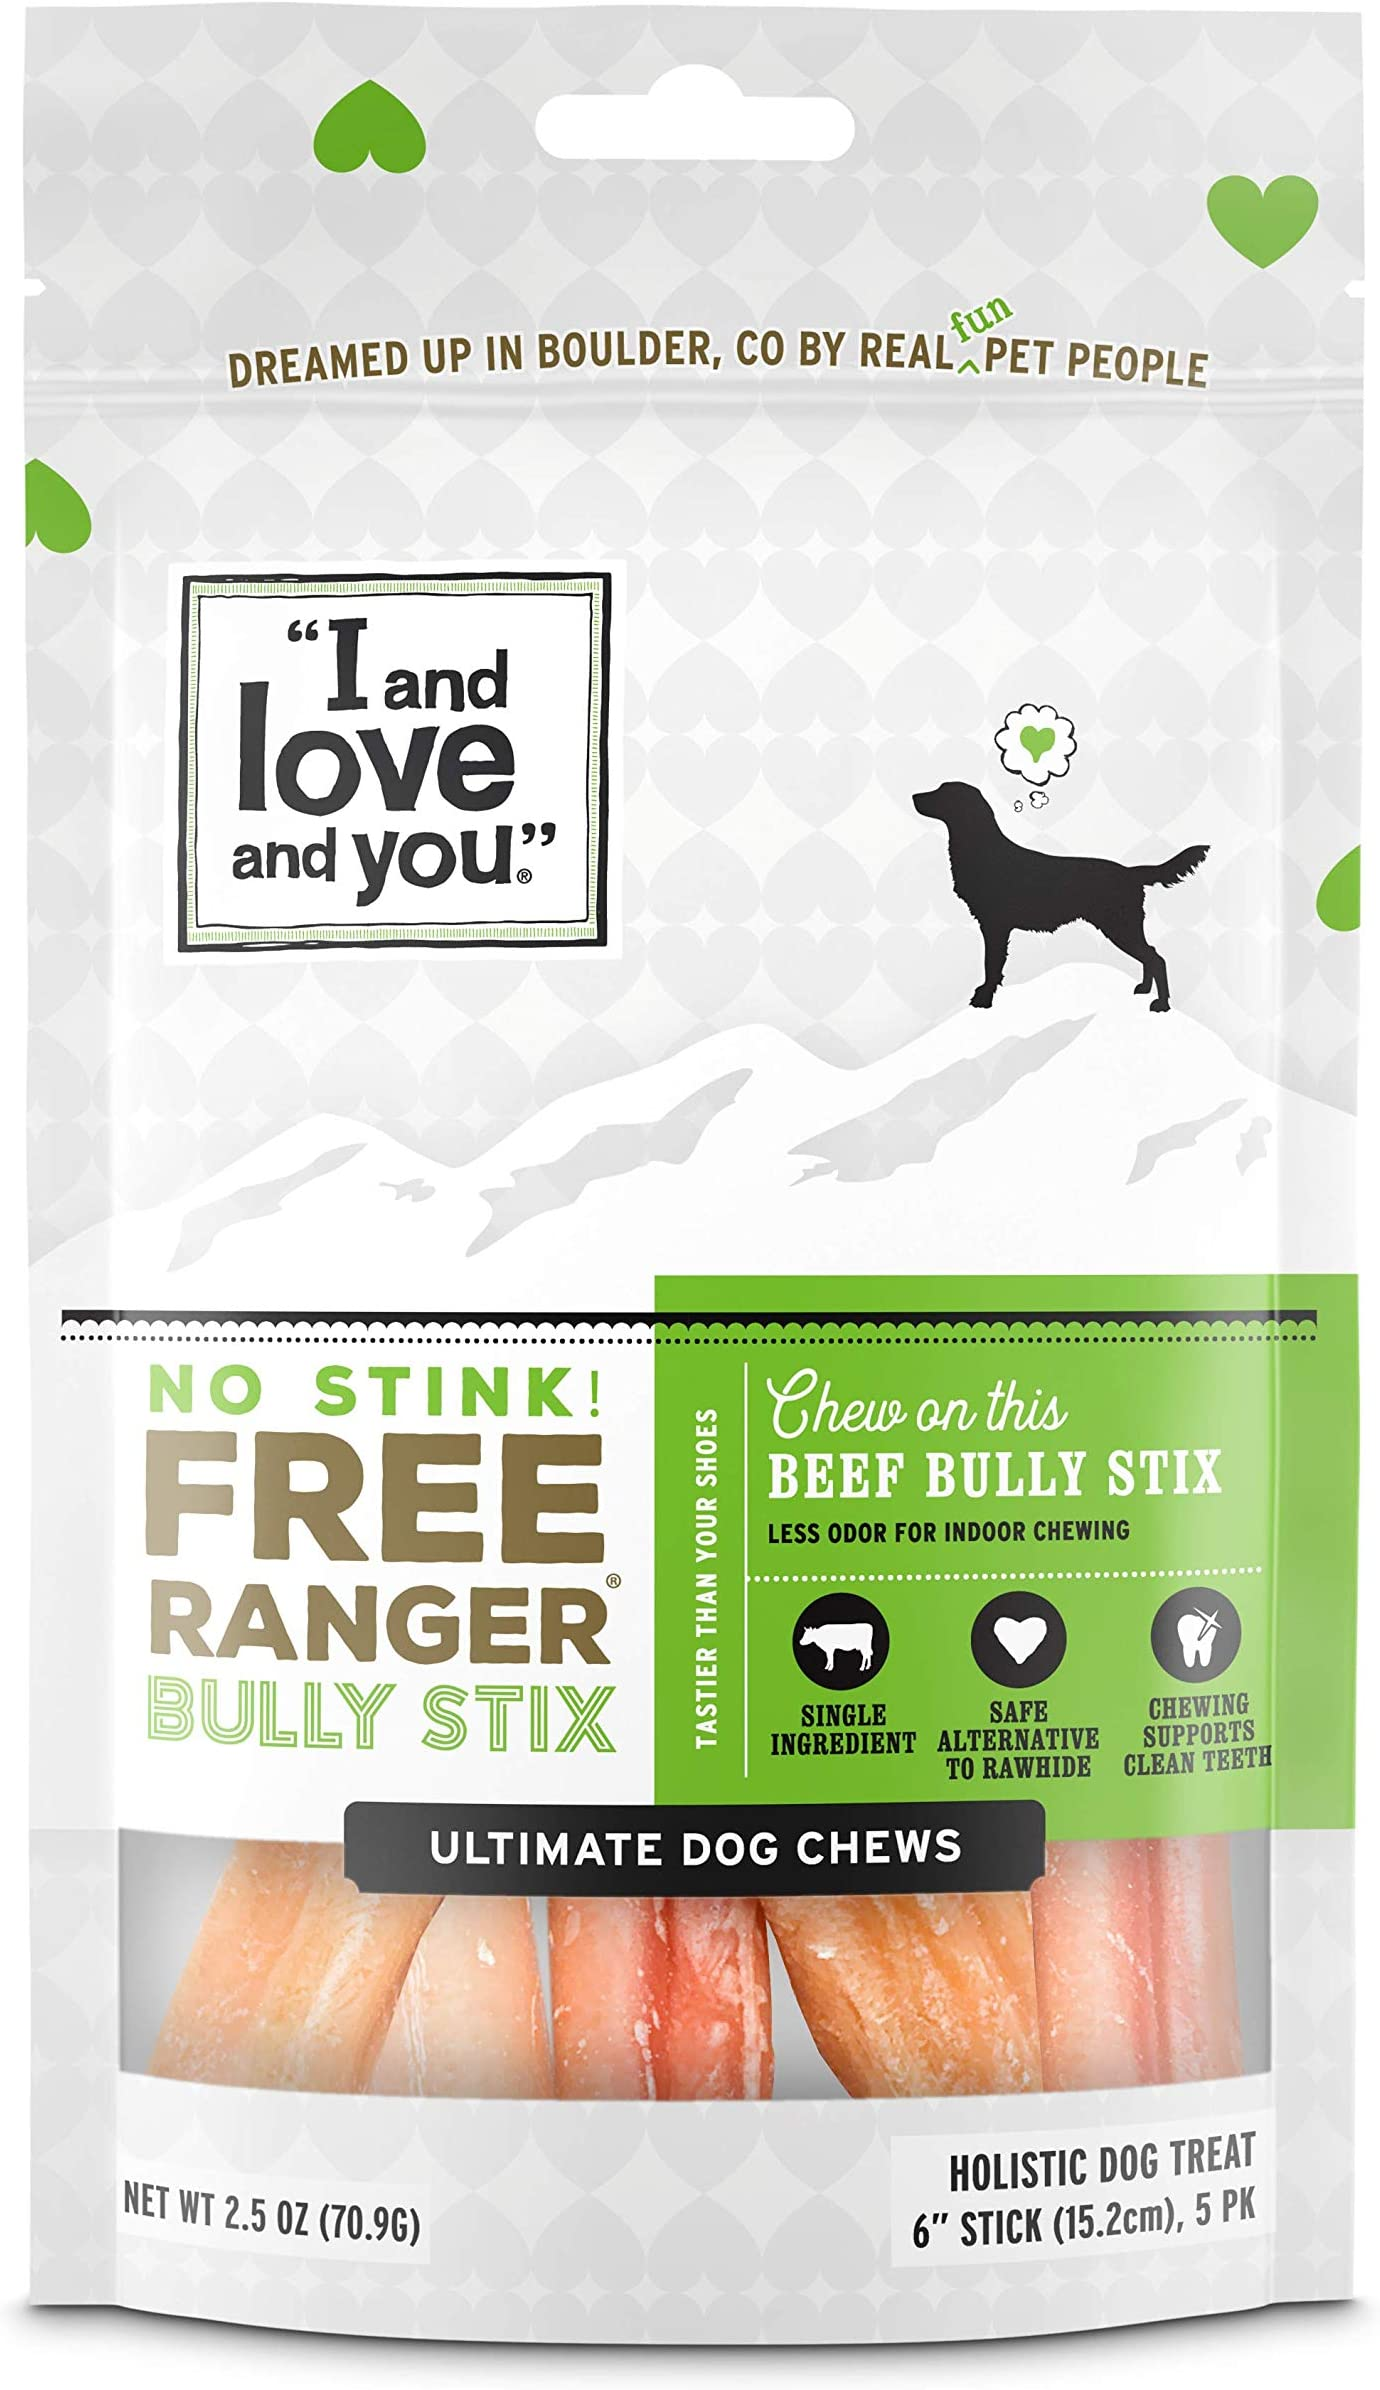 """I and love and you"" Free Ranger Natural Grain Free Bully Stix - 100% Bully Stick / Beef Pizzle (6-inch and 12-inch)"